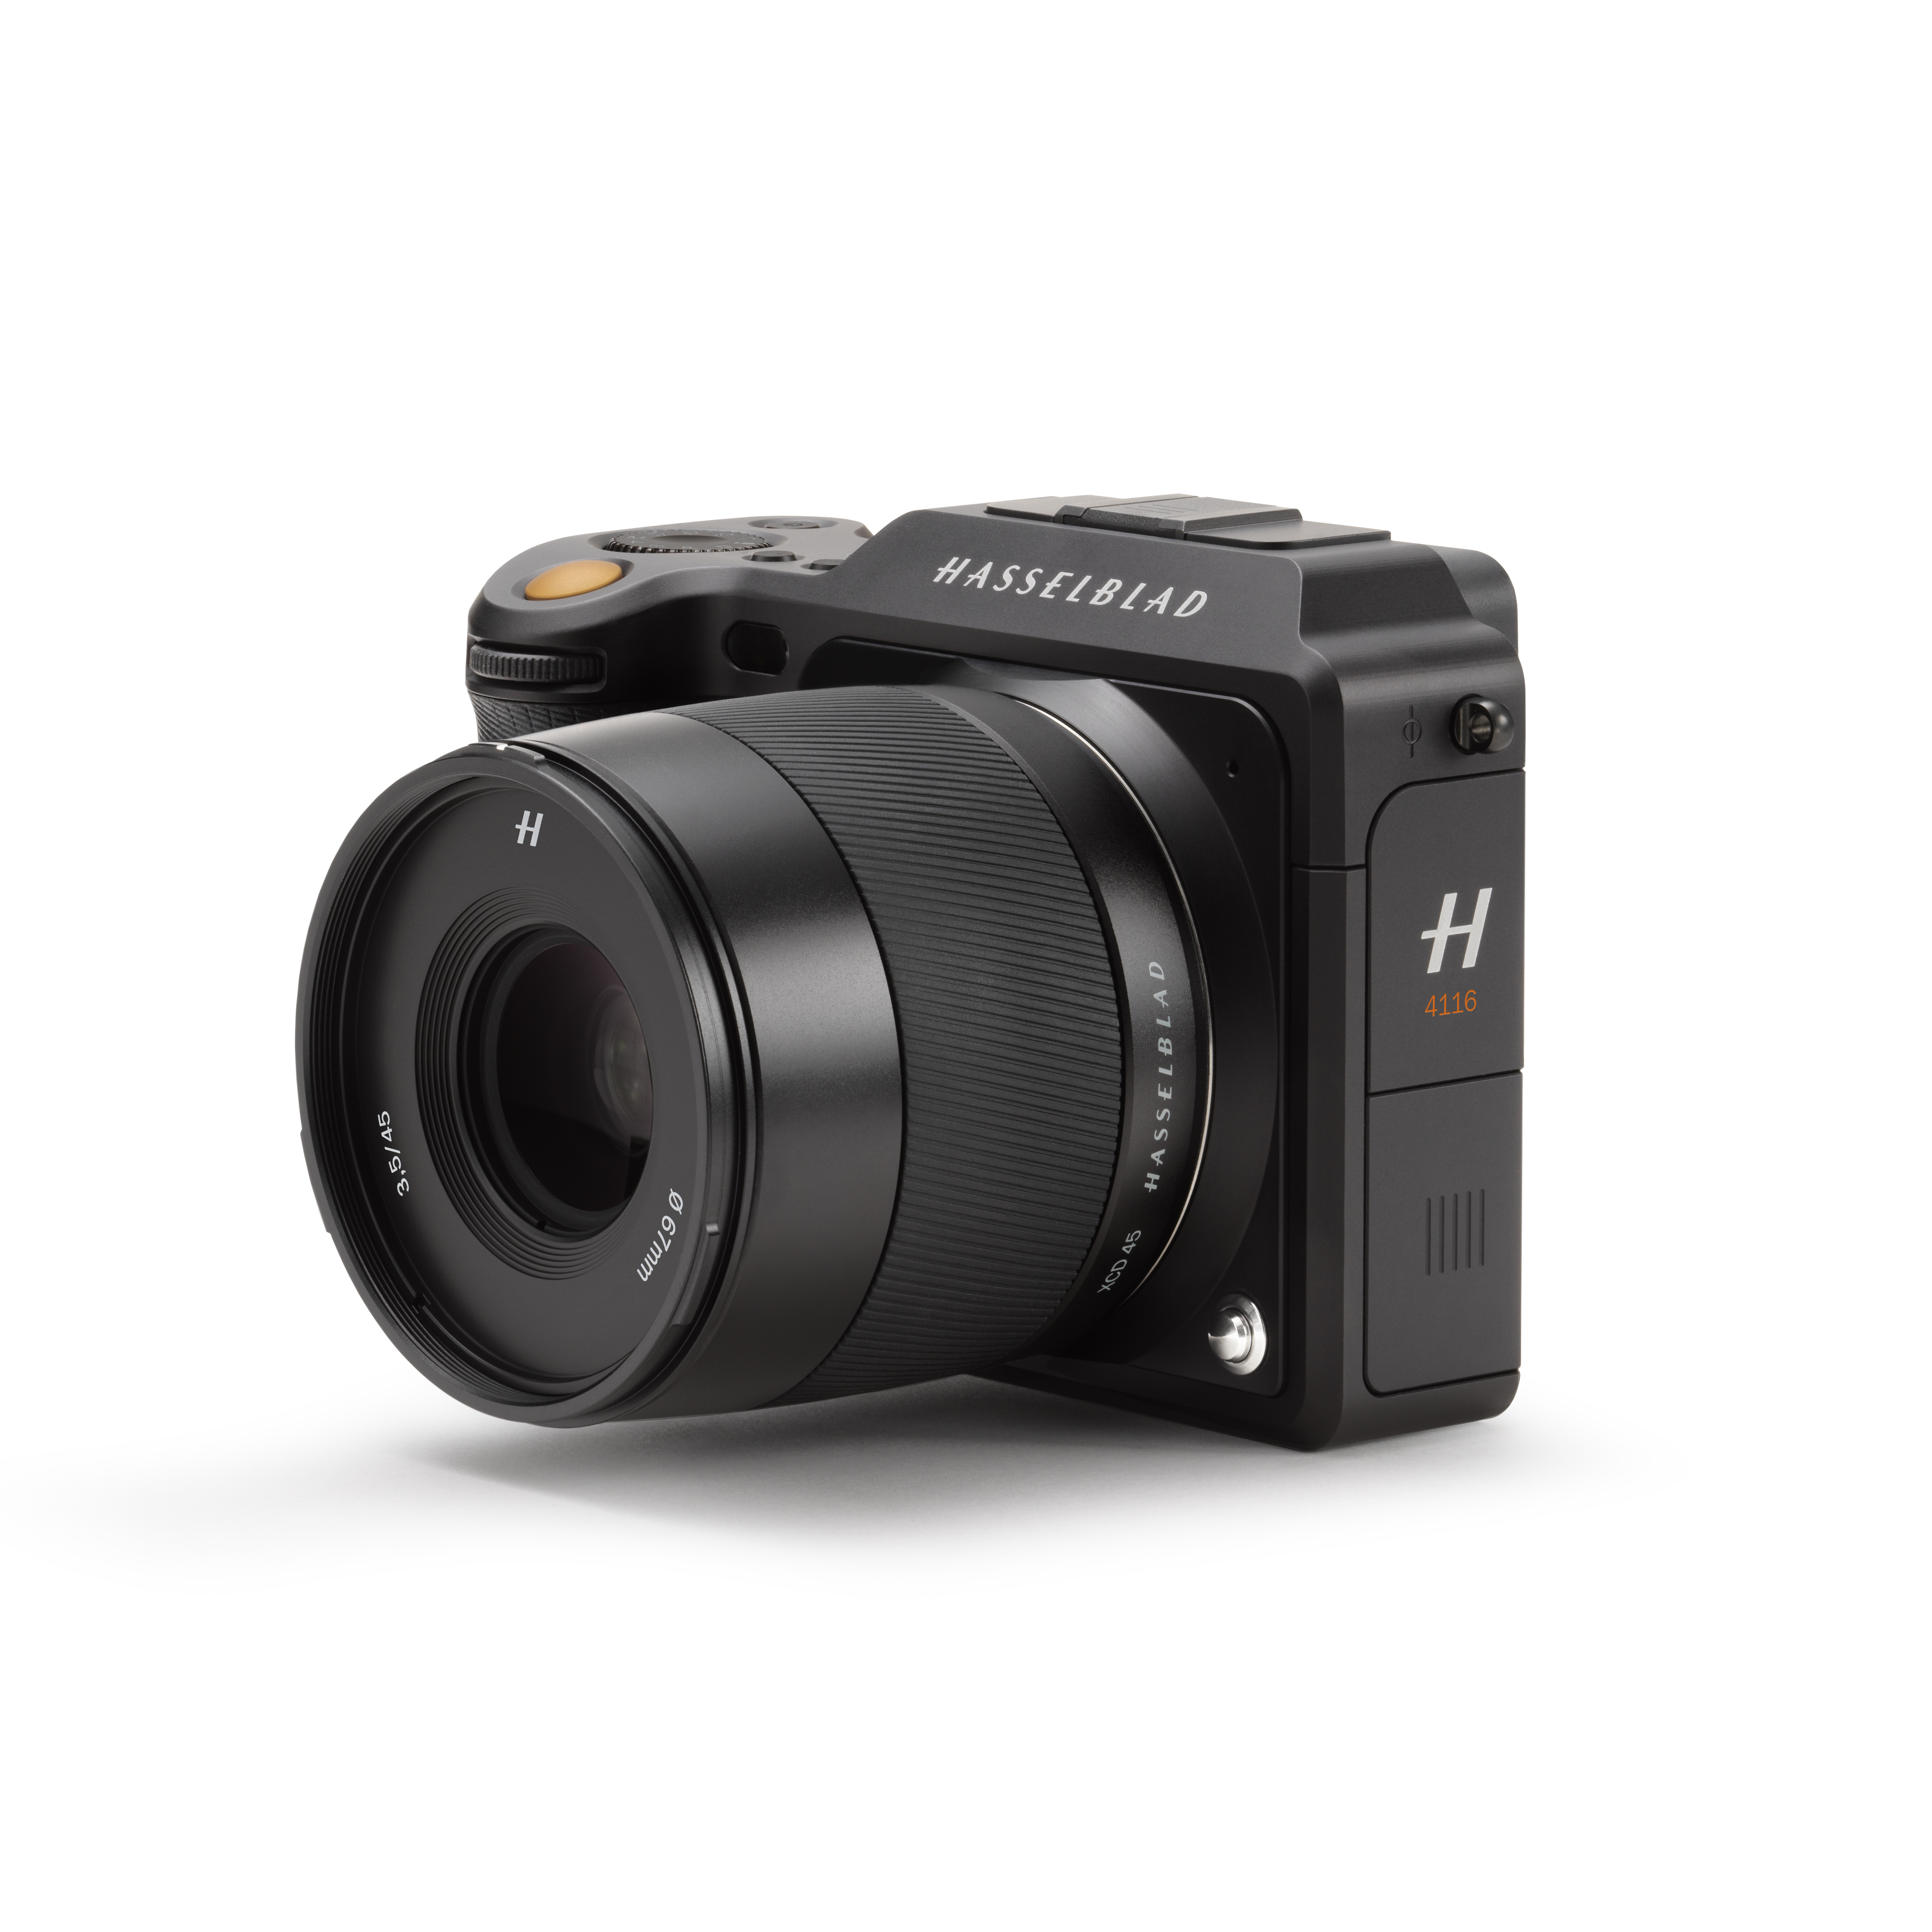 For its 75th anniversary, Hasselblad V1D concept takes 75-megapixels square